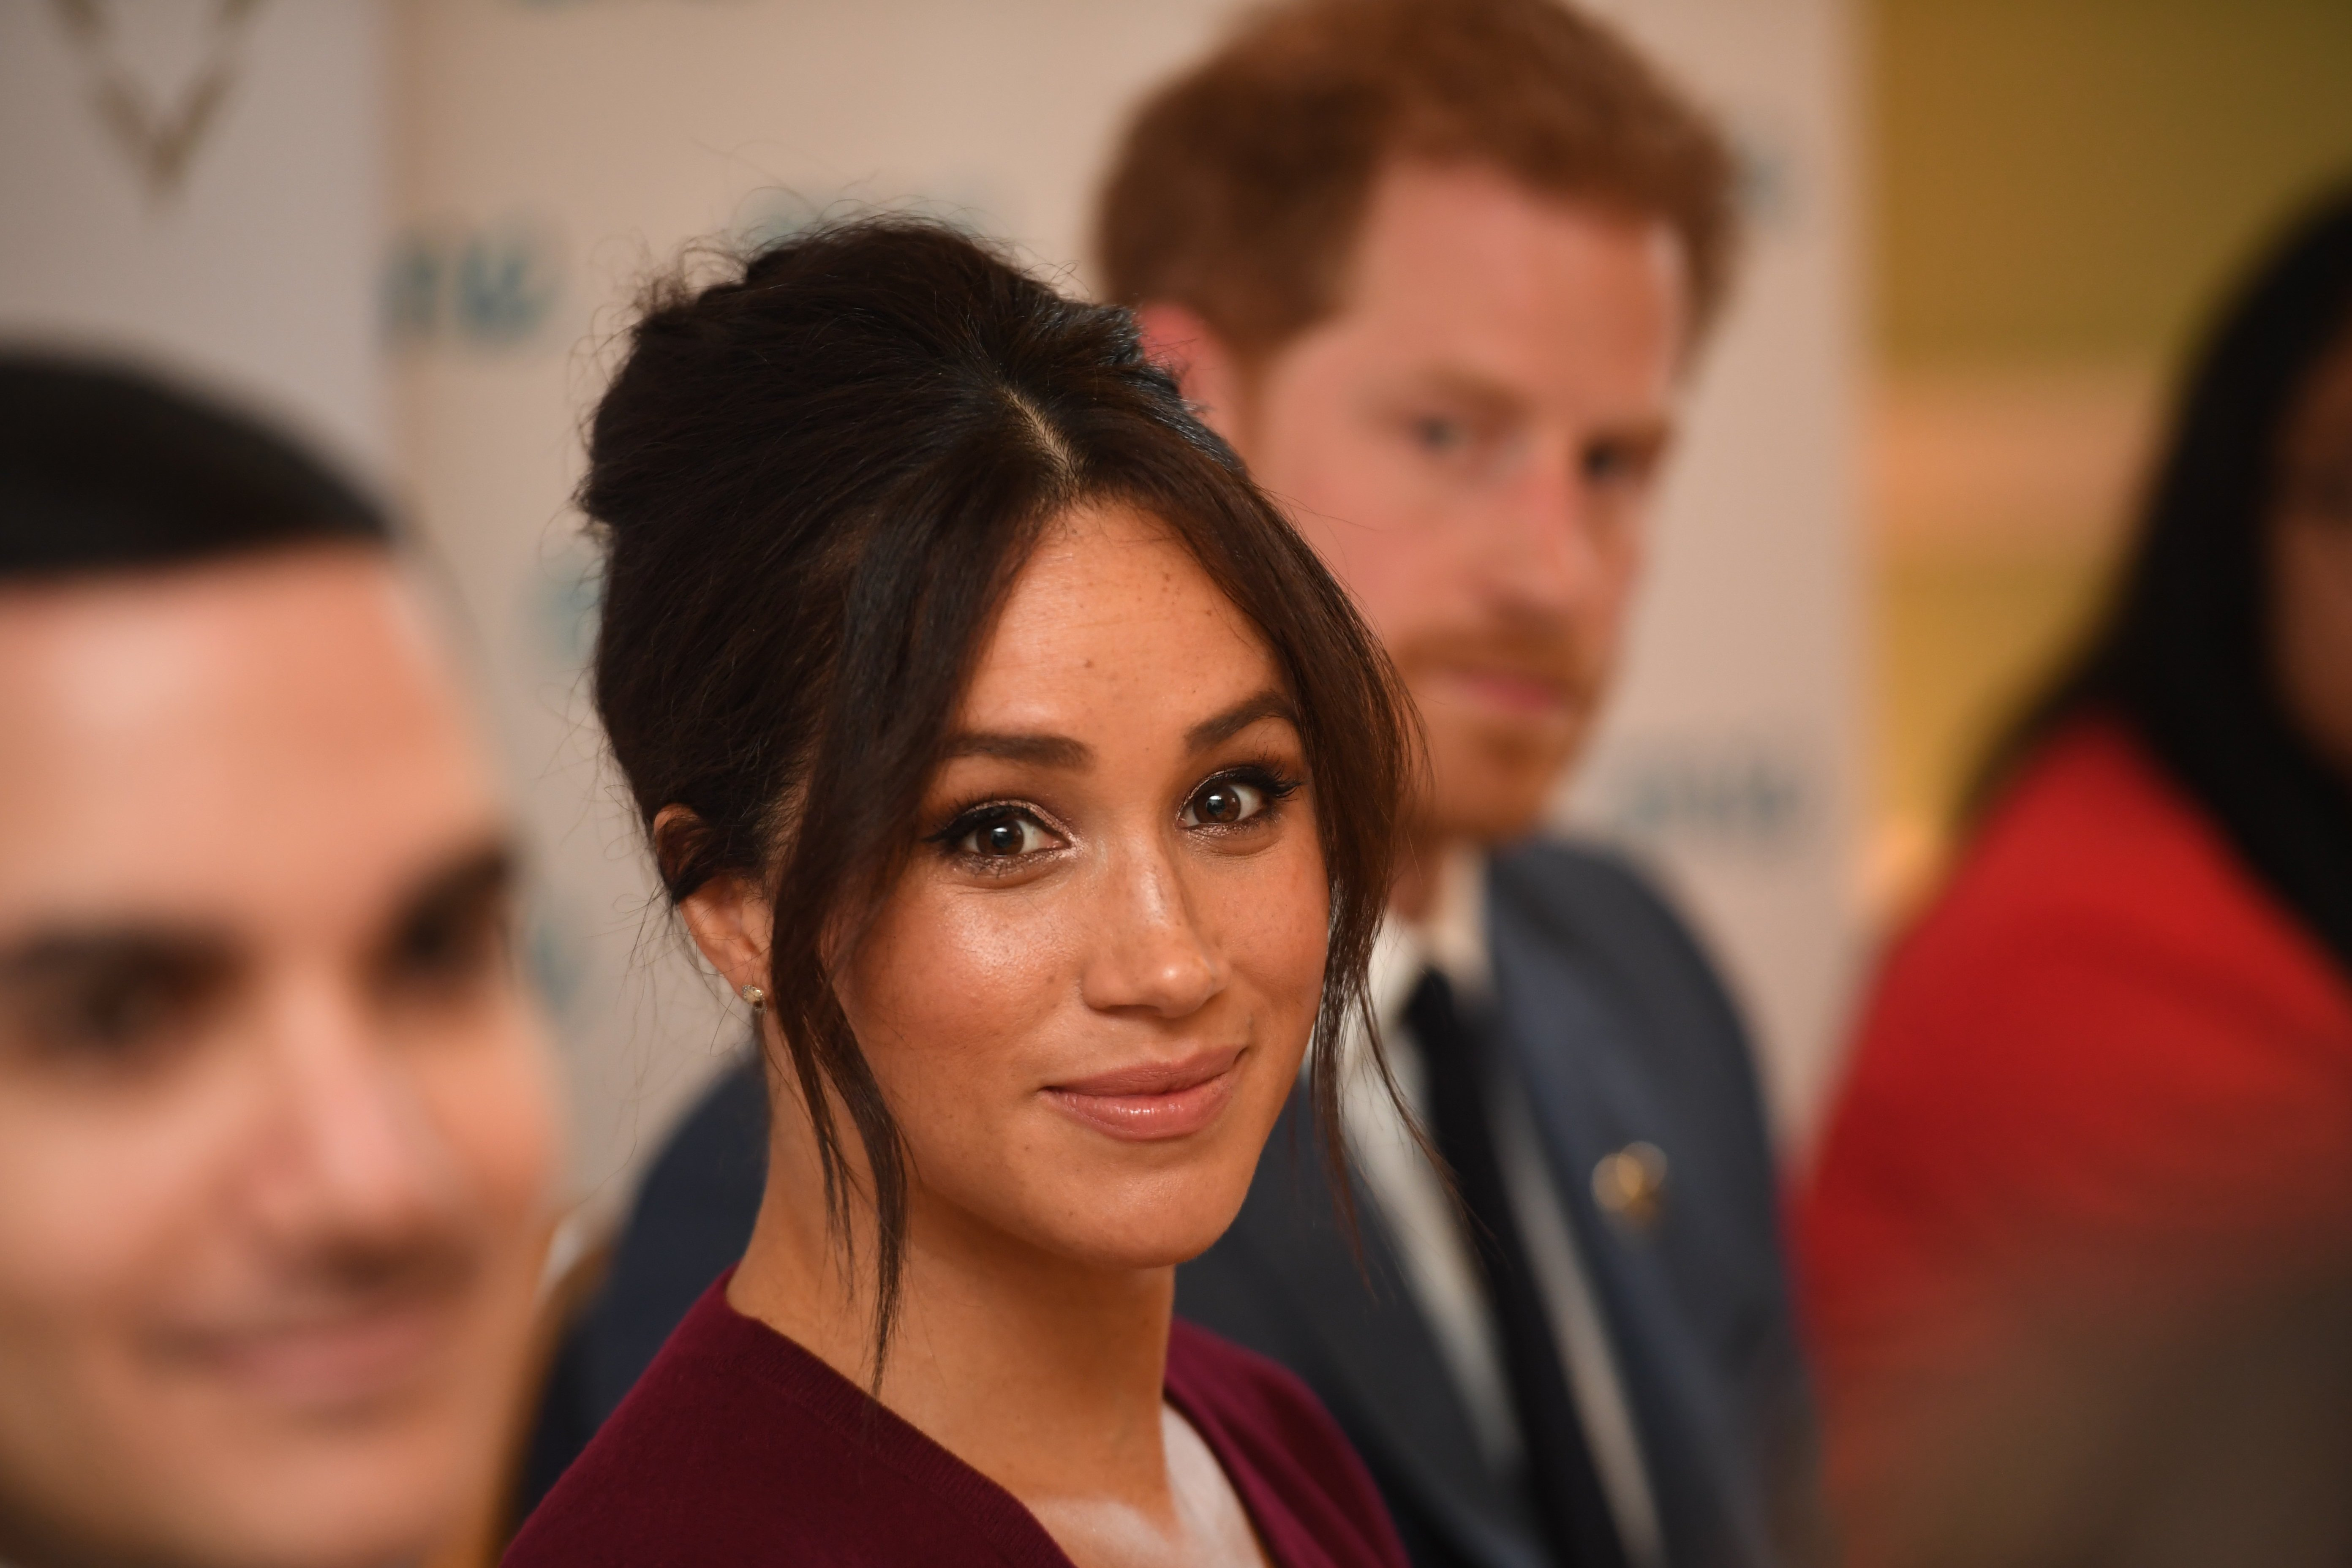 Meghan 'saddened' by 'latest attack on her character' amid bullying claim